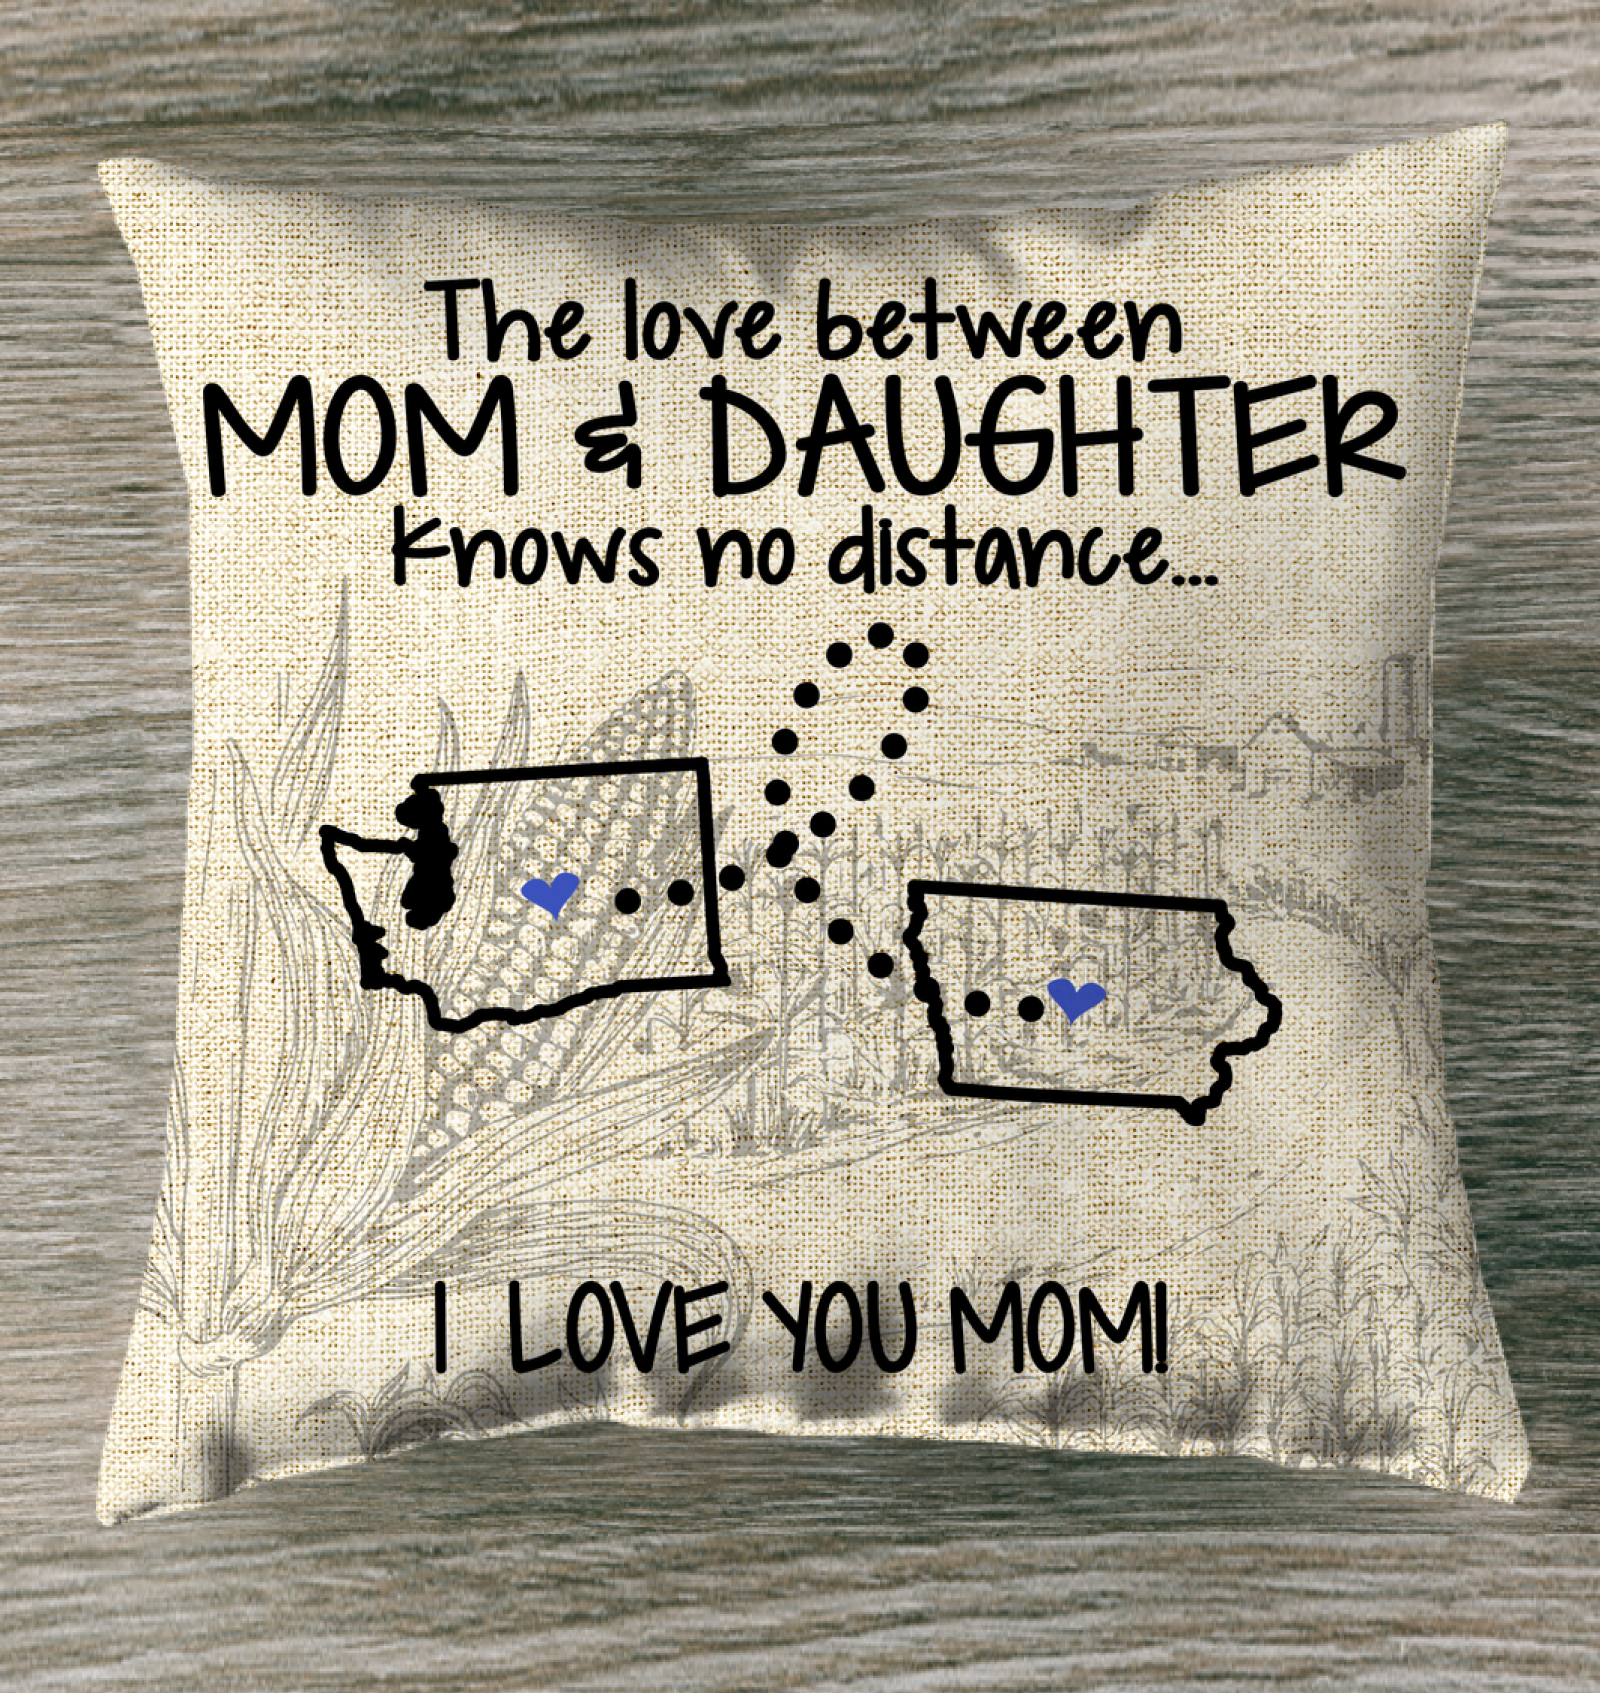 IOWA WASHINGTON THE LOVE BETWEEN MOM AND DAUGHTER